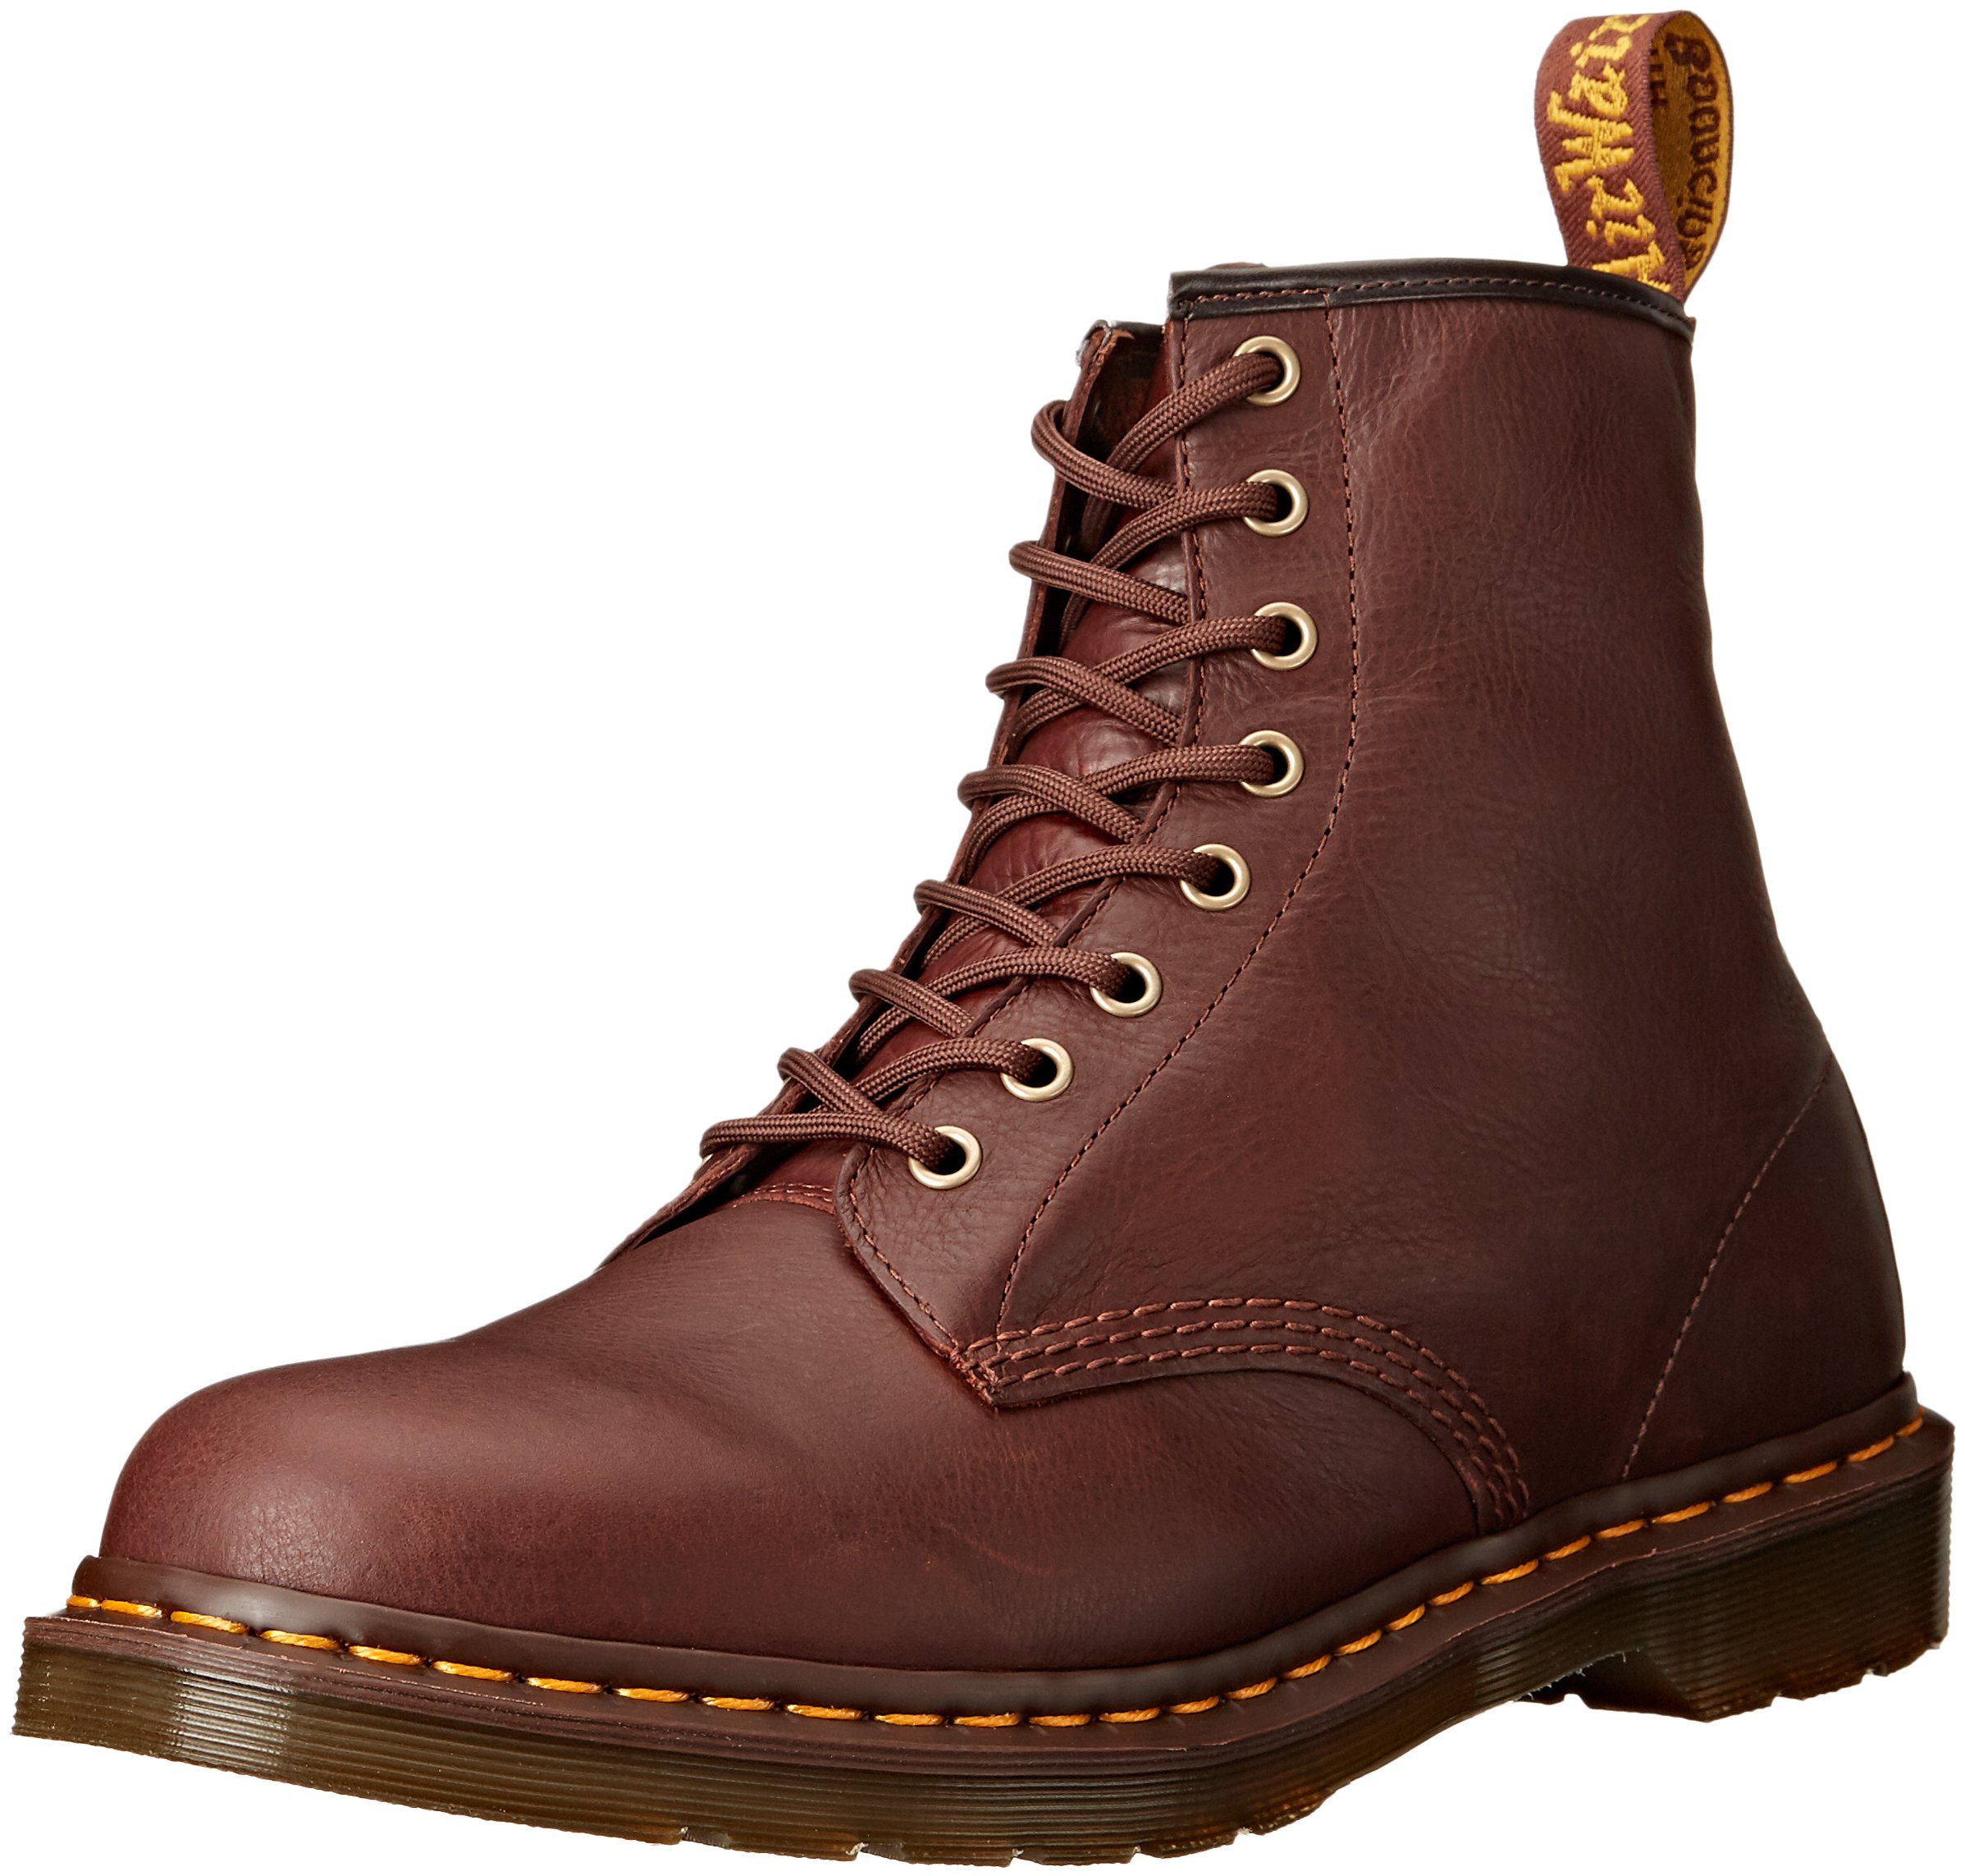 Dr. Martens Men's 1460 Carpathian Combat Boot, Tan, 9 UK/10 M US